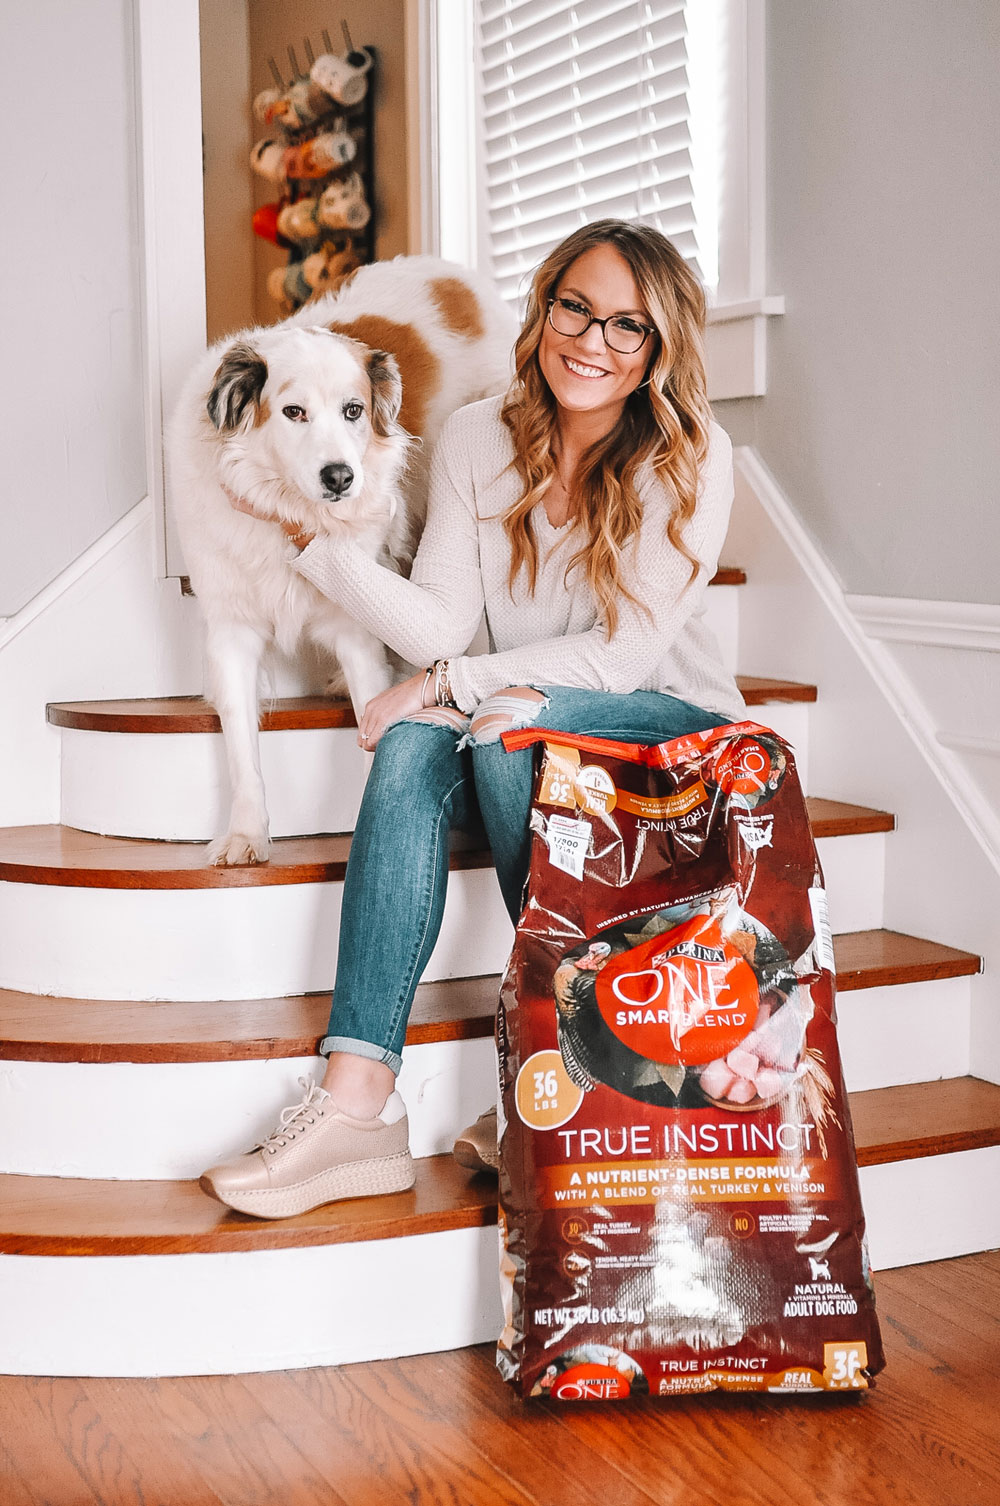 OKC Blogger Amanda Martin and her dog, Chloe